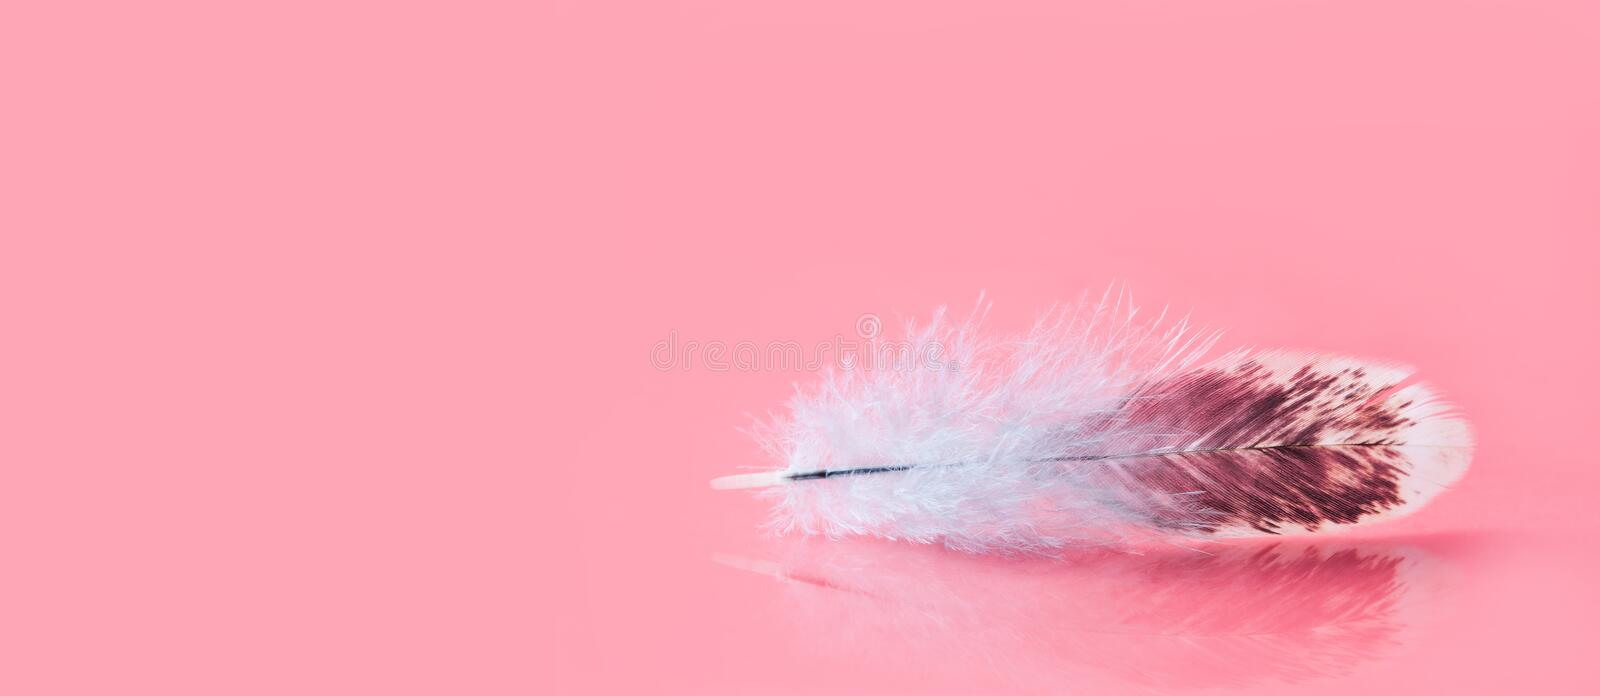 Fluffy colorful feather on pink background. Beautiful fluffy bird plumage pattern. Shallow depth of field selective. Focus. Copy space royalty free stock image